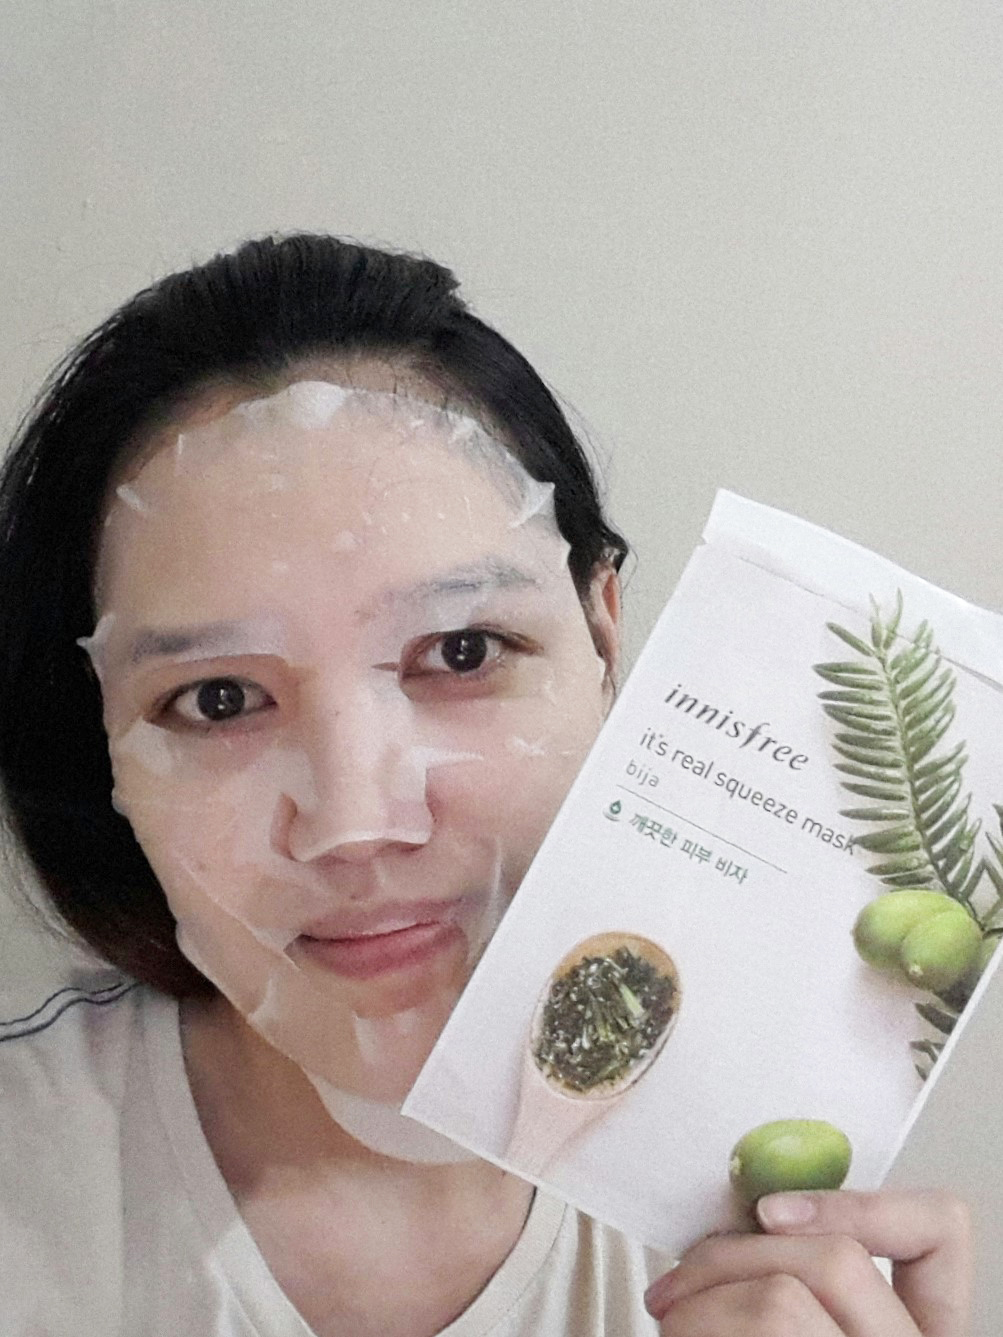 Curious About Beauty Travel And Life Review Innisfree Its Real Squeeze Mask Bija 20ml The Solution Is After 30 Minutes I Can Feel My Face Soft Moisturized Maybe From Aloe Vera But Theres Nothing Happened